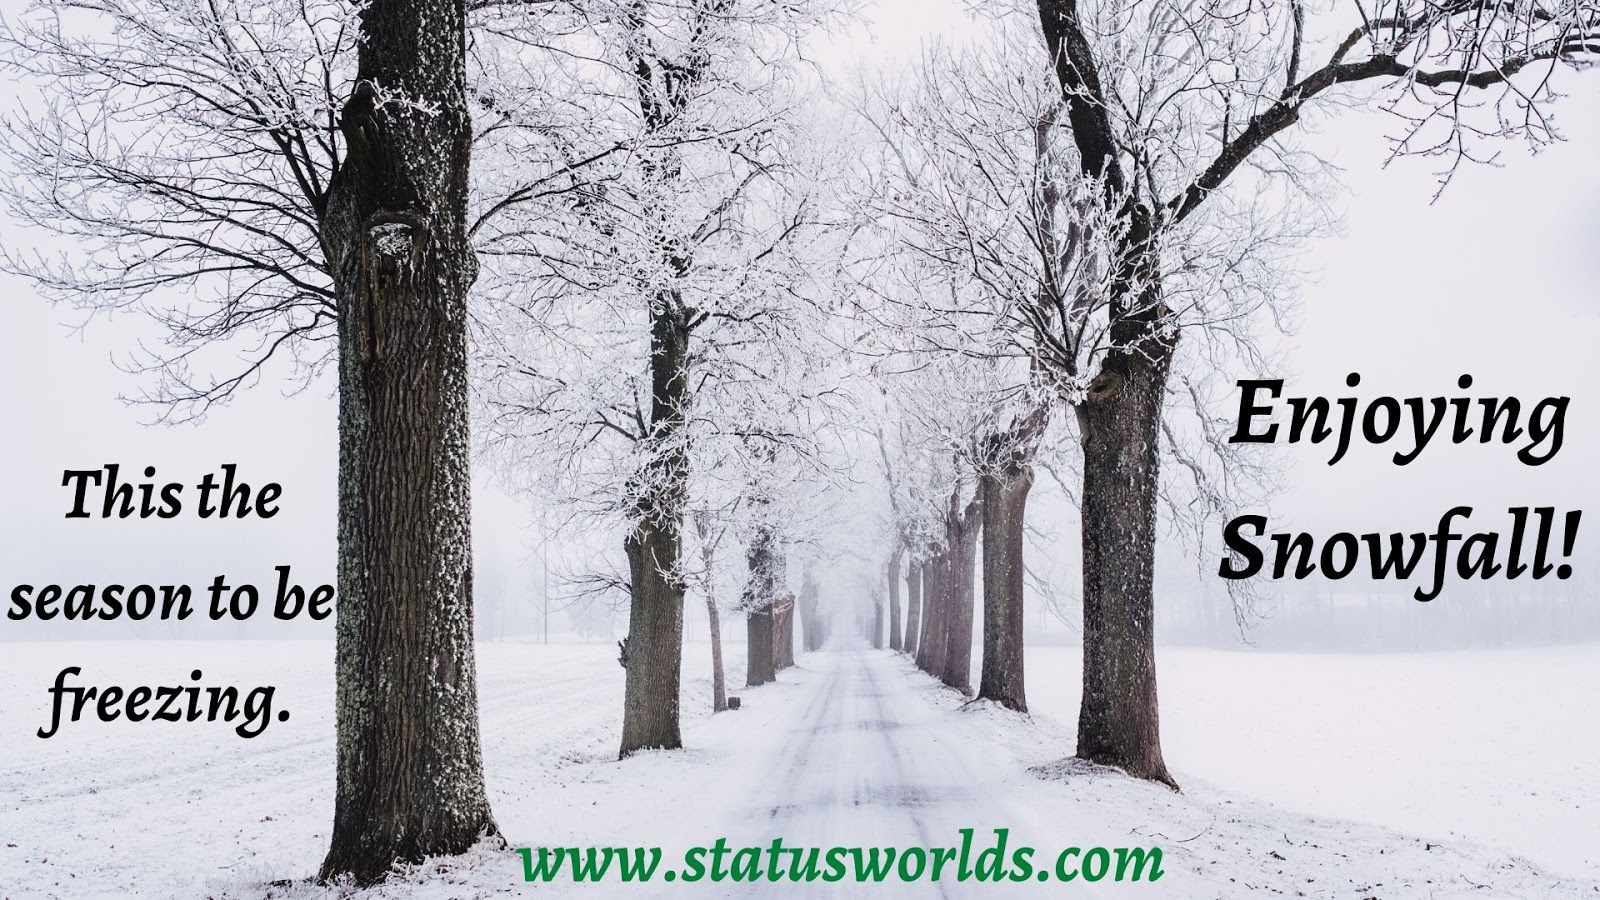 200 Top Level Winter Snowfall Status Caption Quotes 2021 For A Winter Lover Status World Explore 613 winter quotes by authors including victor hugo, albert camus, and paul theroux at brainyquote. quotes 2021 for a winter lover